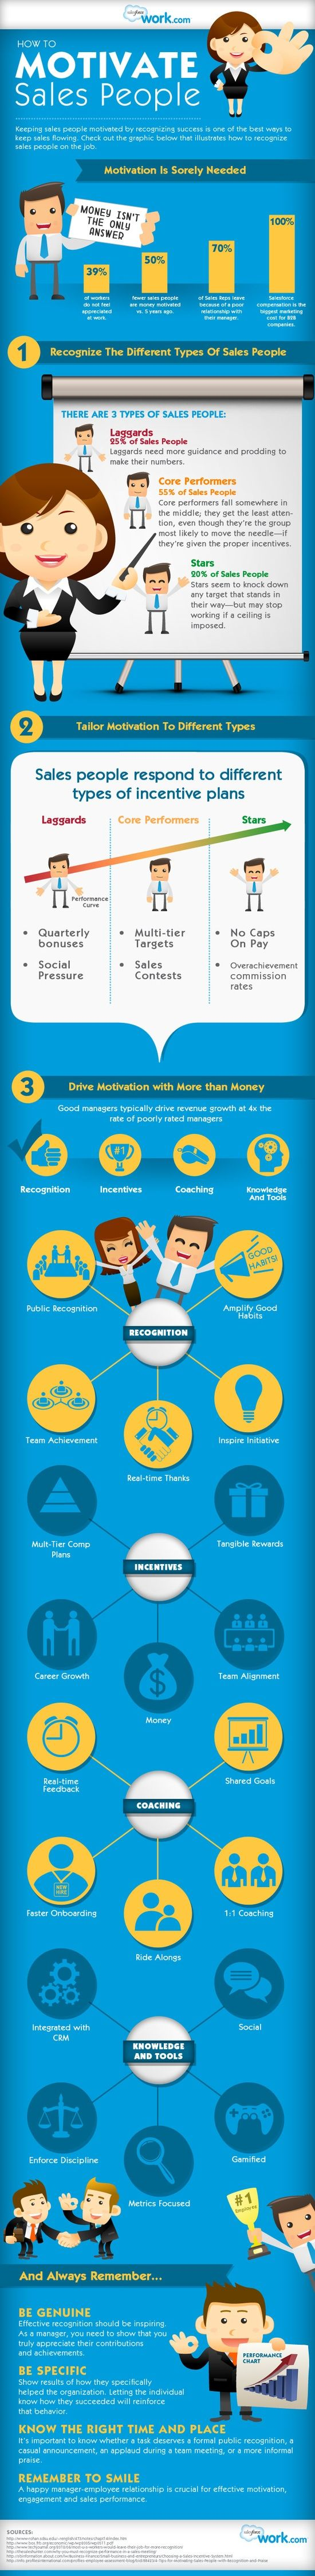 How to Motivate #Sales People #infographic